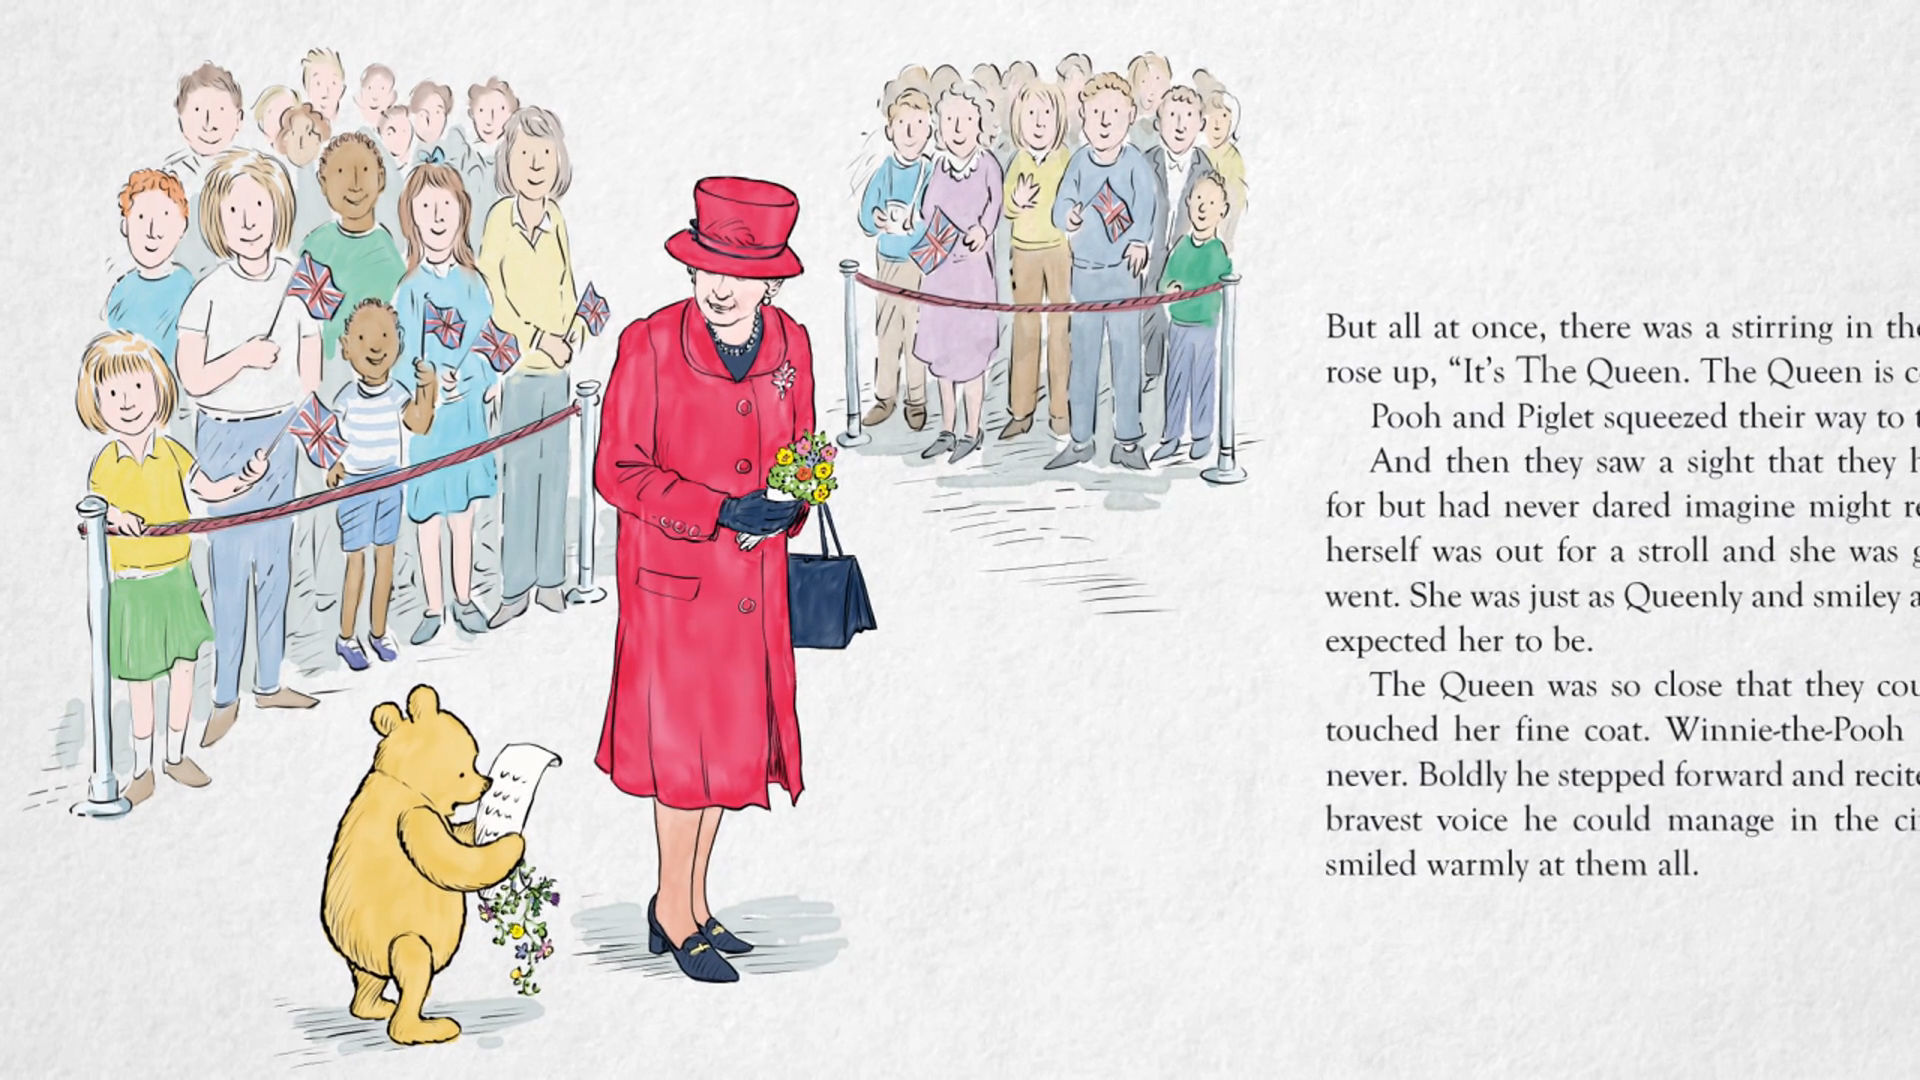 Winnie the Pooh and the Royal Birthday